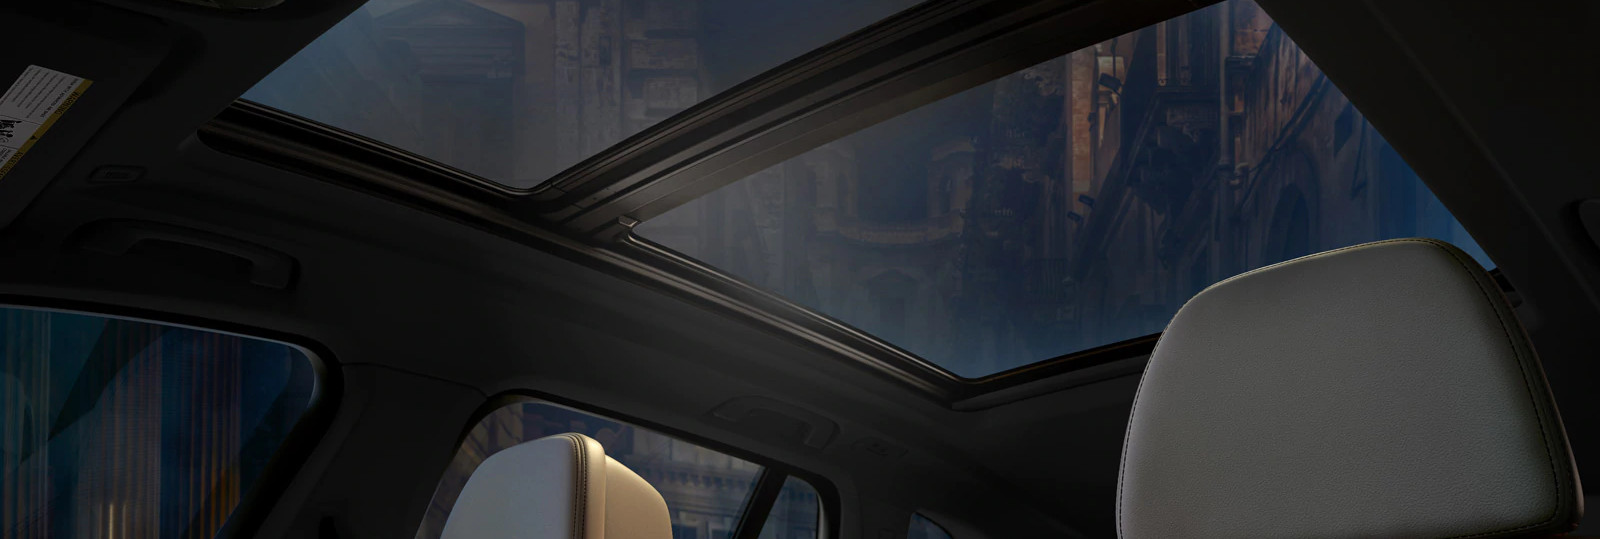 Standard Power Moonroof in the 2020 X5